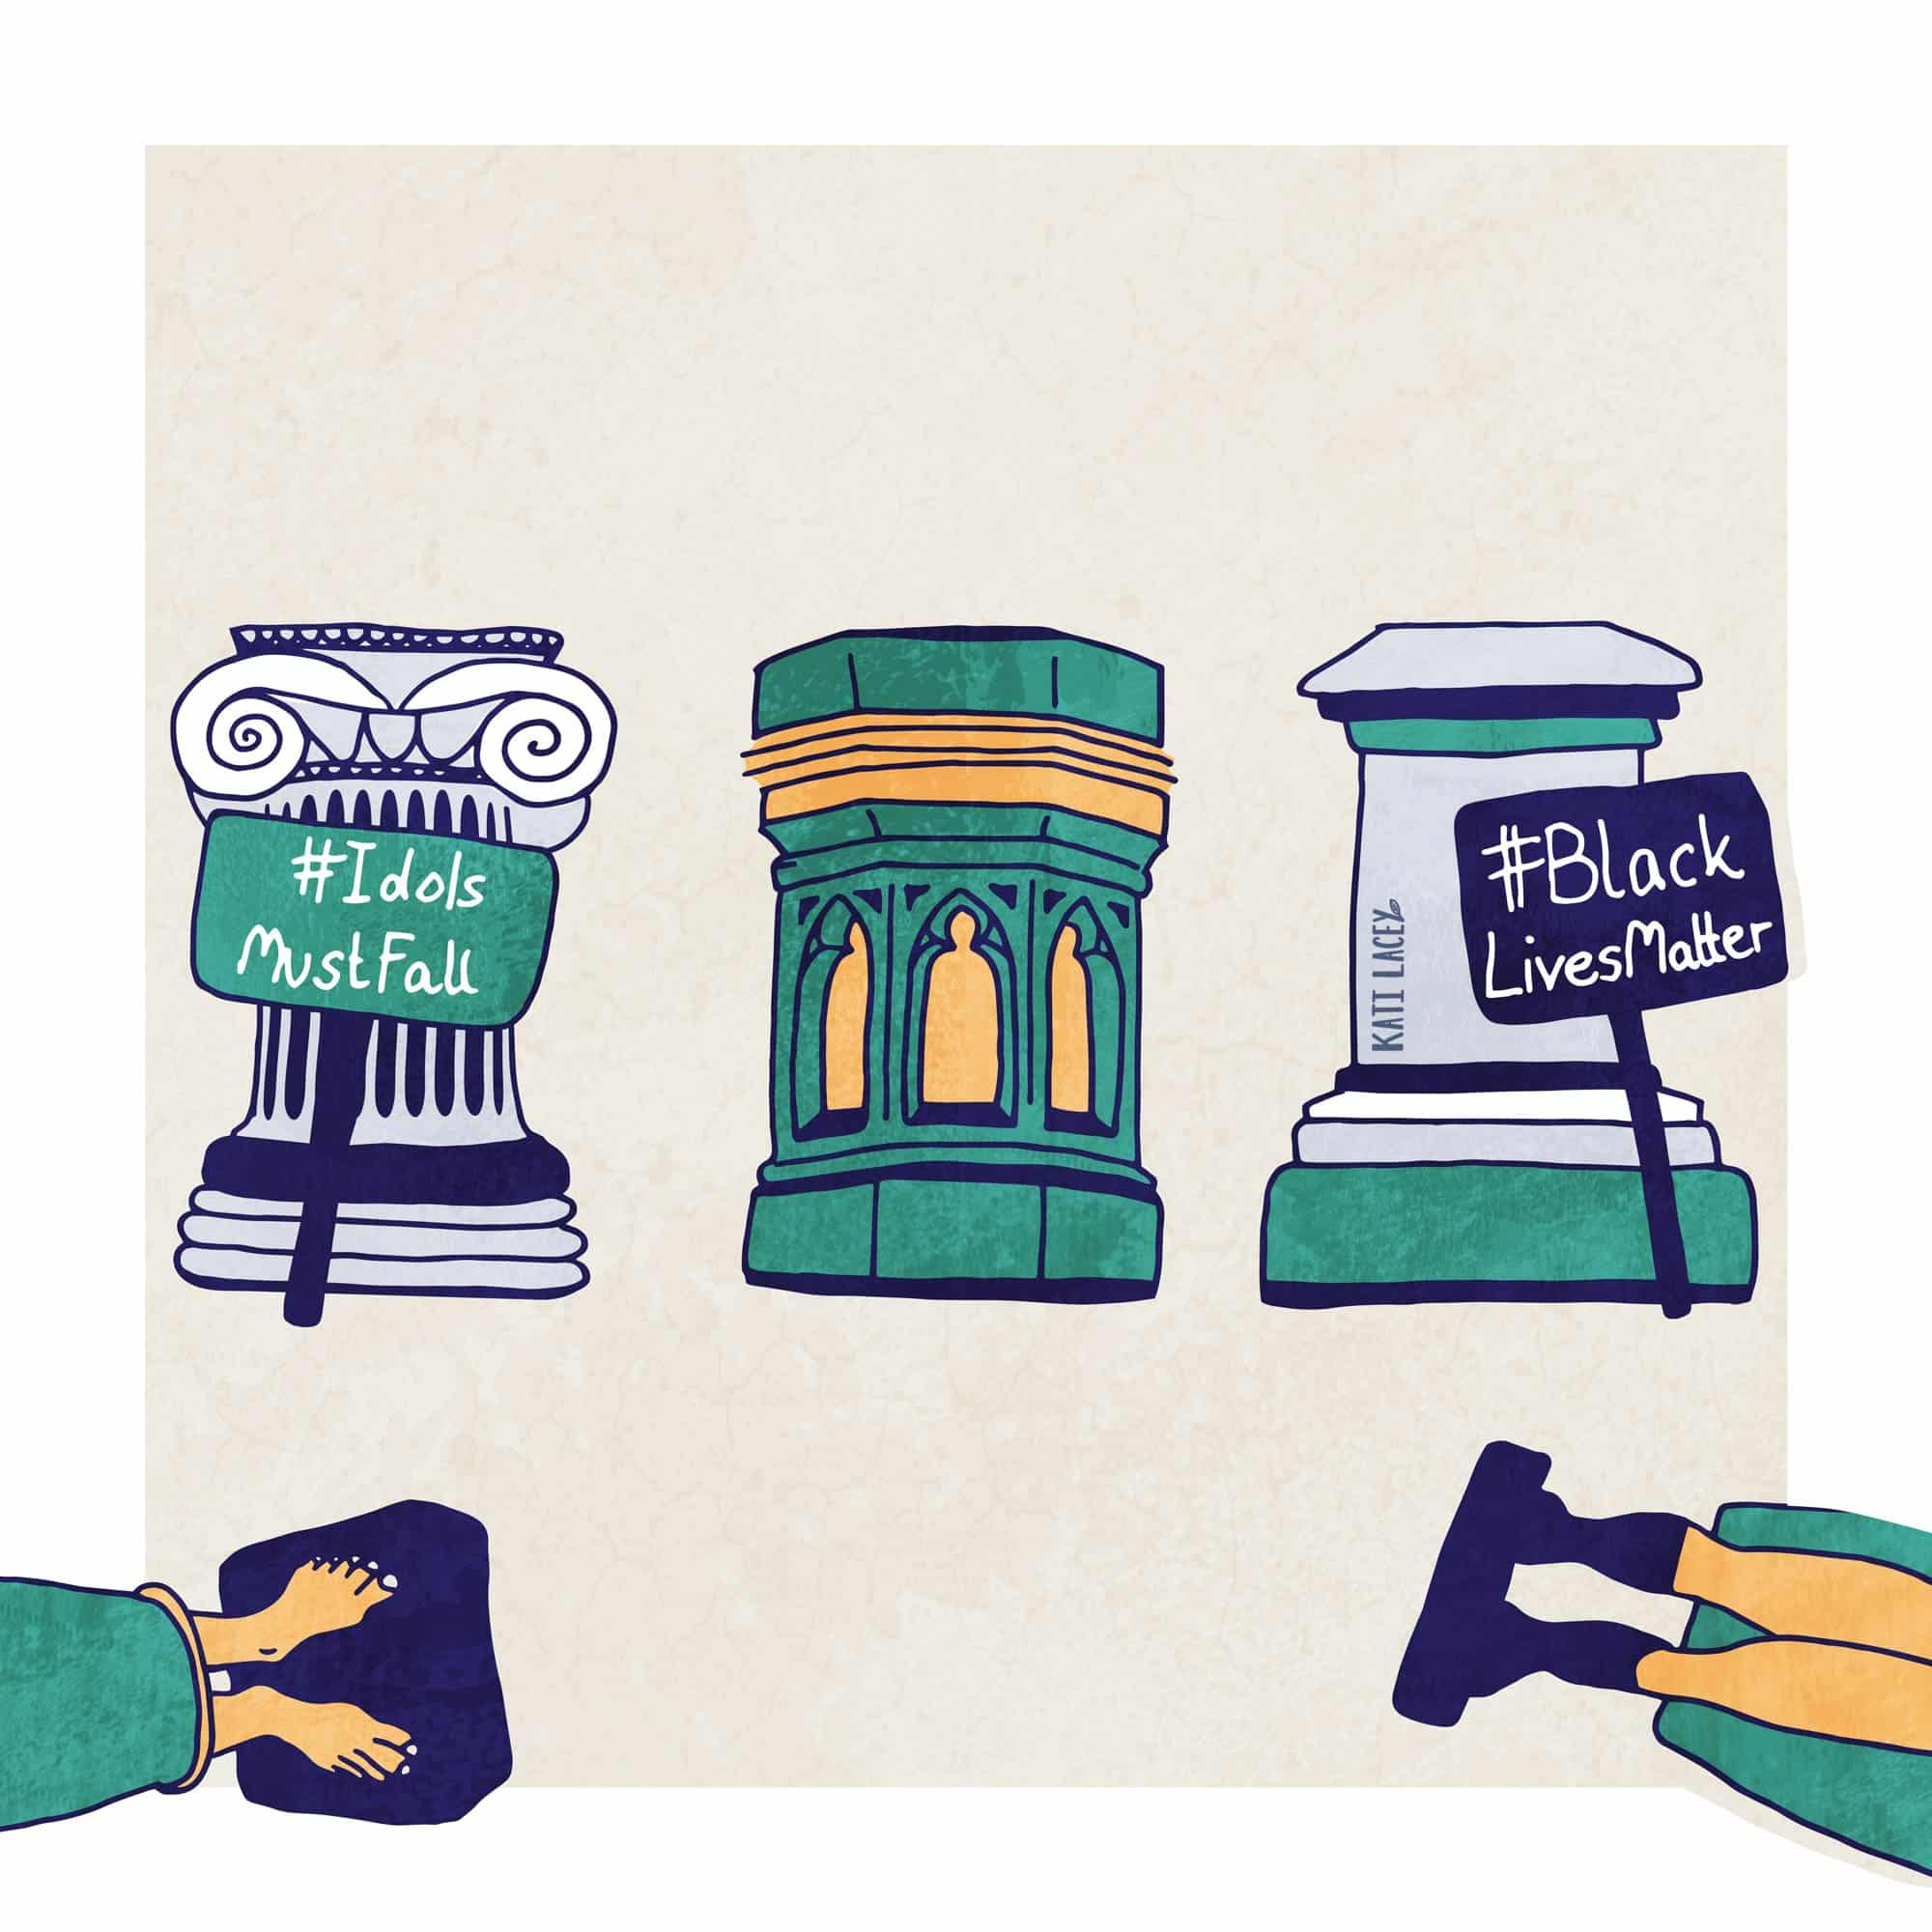 Editorial illustration showing empty plinths with statues fallen off - the plinths are from different times through history referencing the tradition of toppling statues